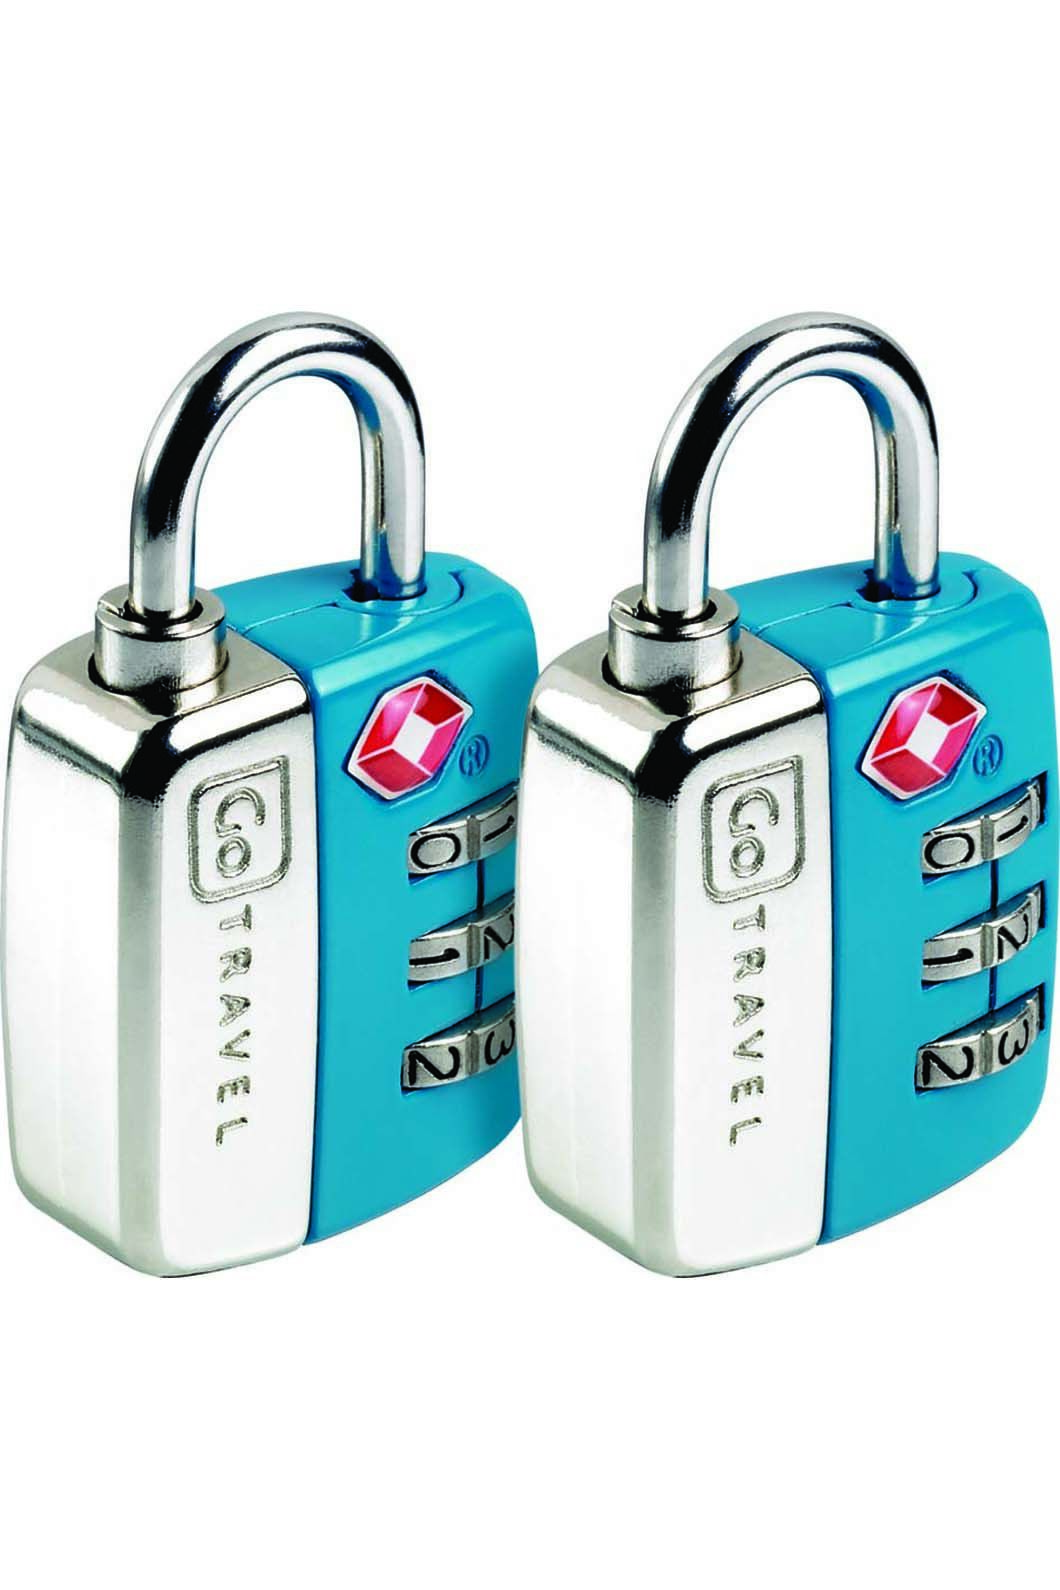 Go Travel Twin Travel Sentry Lock Set, None, hi-res